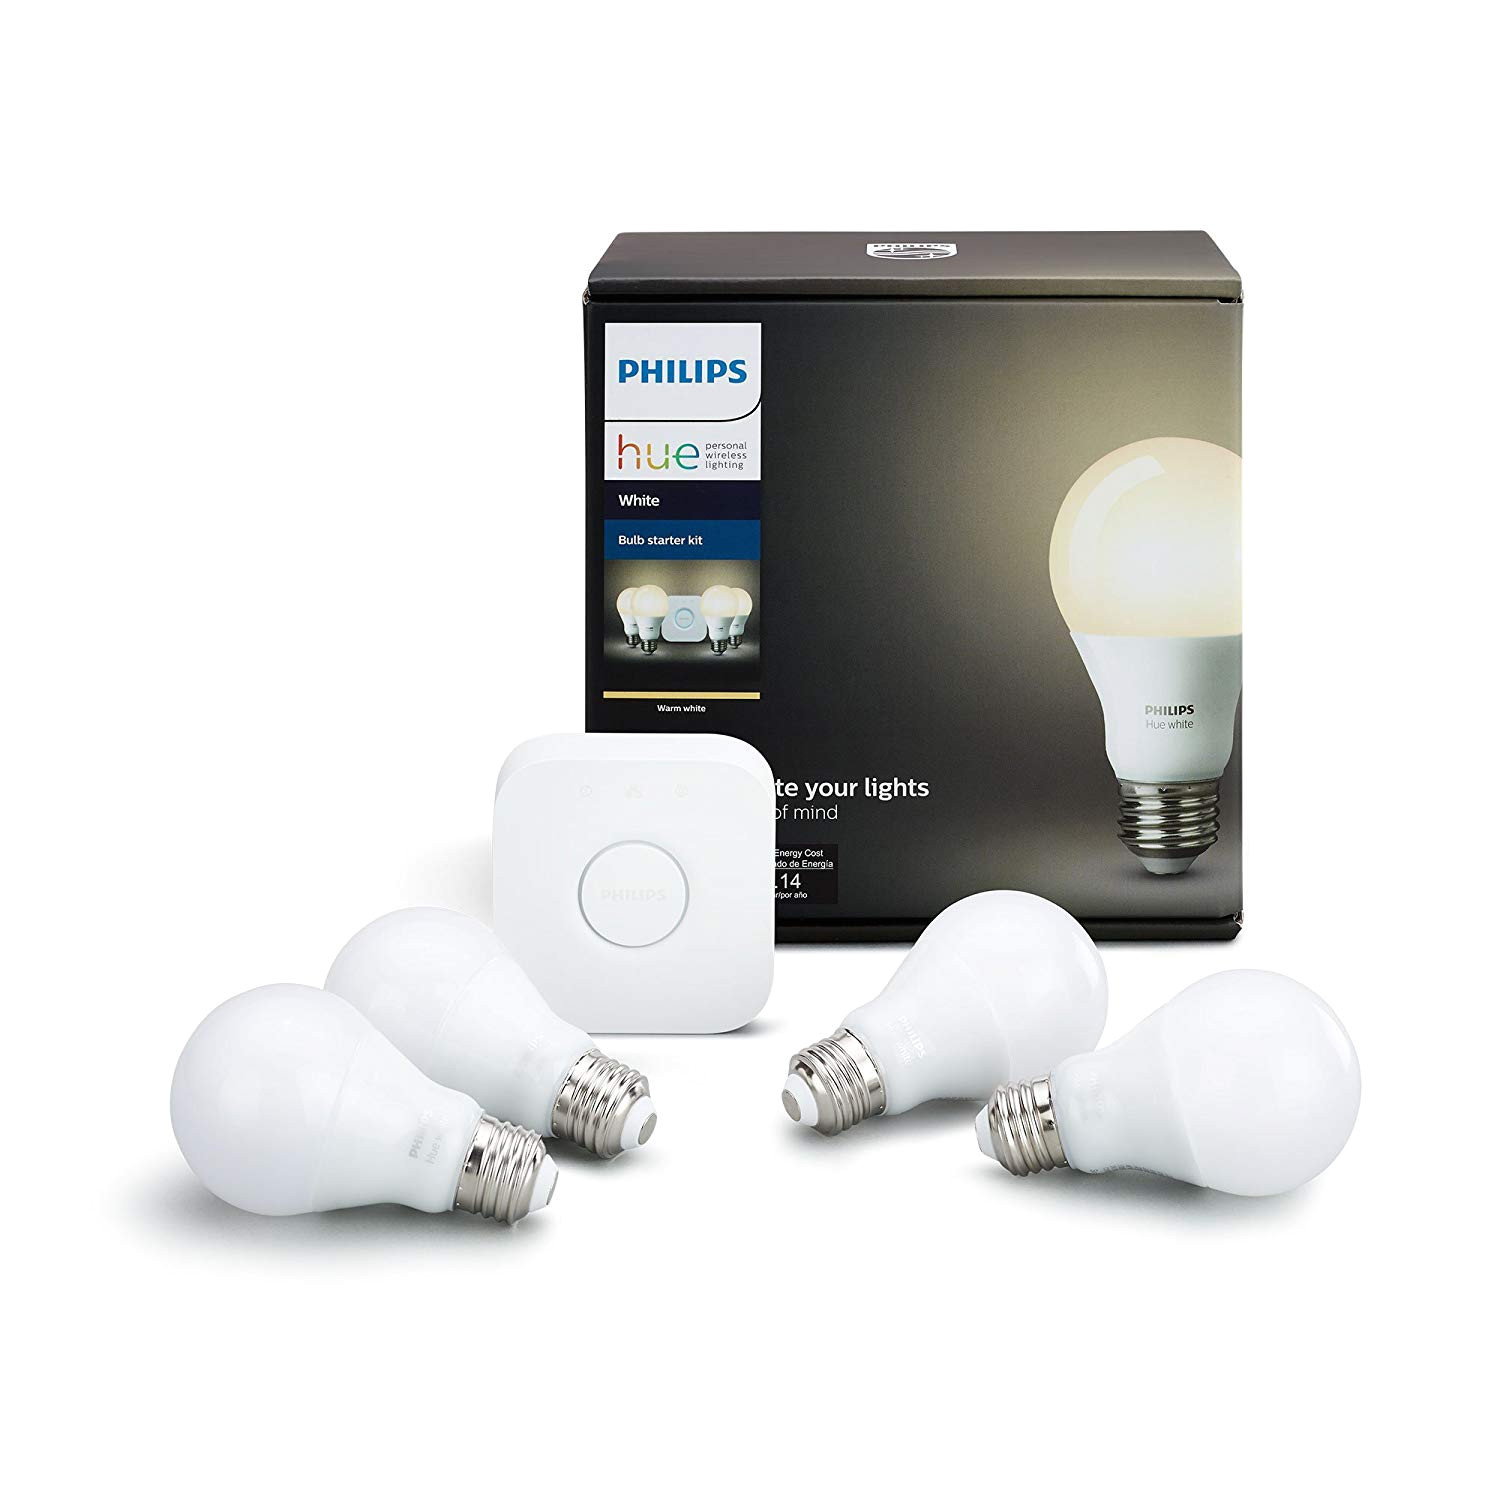 philips hue white a19 60w equivalent led smart bulb starter kit 4 a19 white bulbs and 1 hub compatible with amazon alexa apple homekit and google